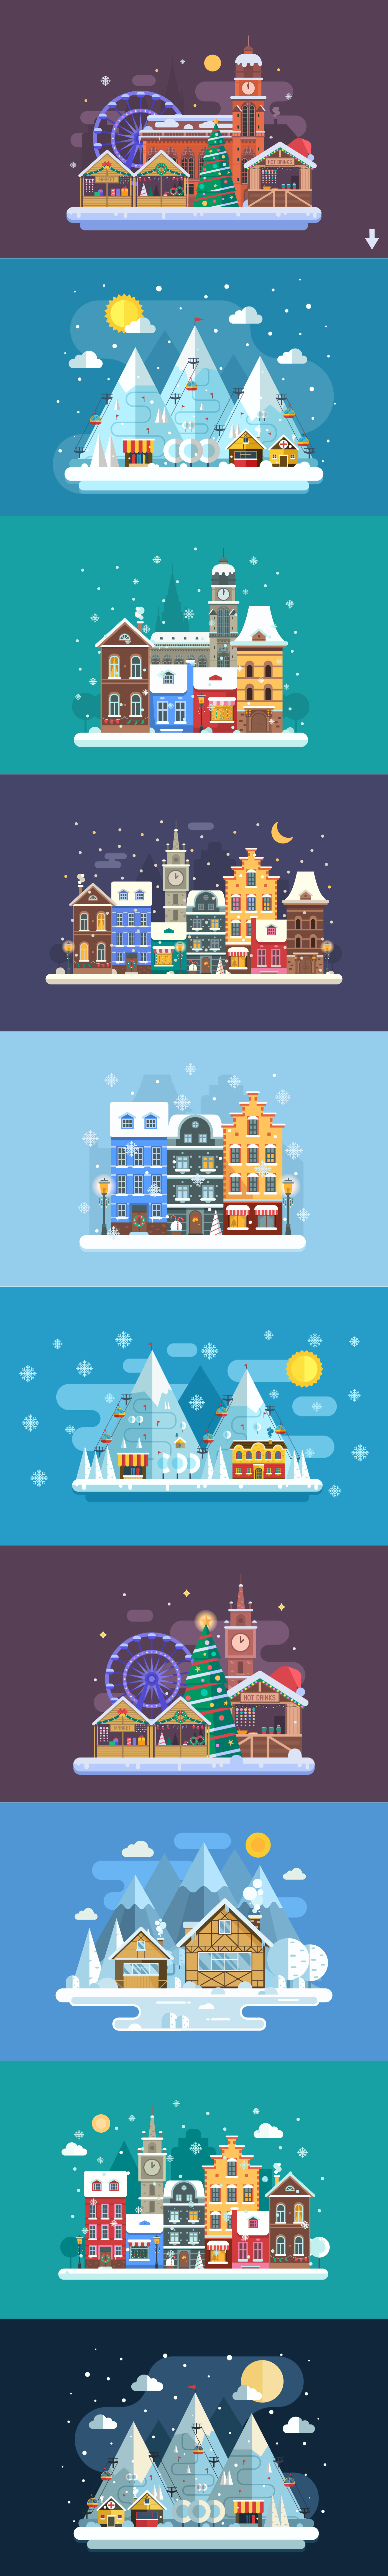 Winter Backgrounds and Landscapes example image 10